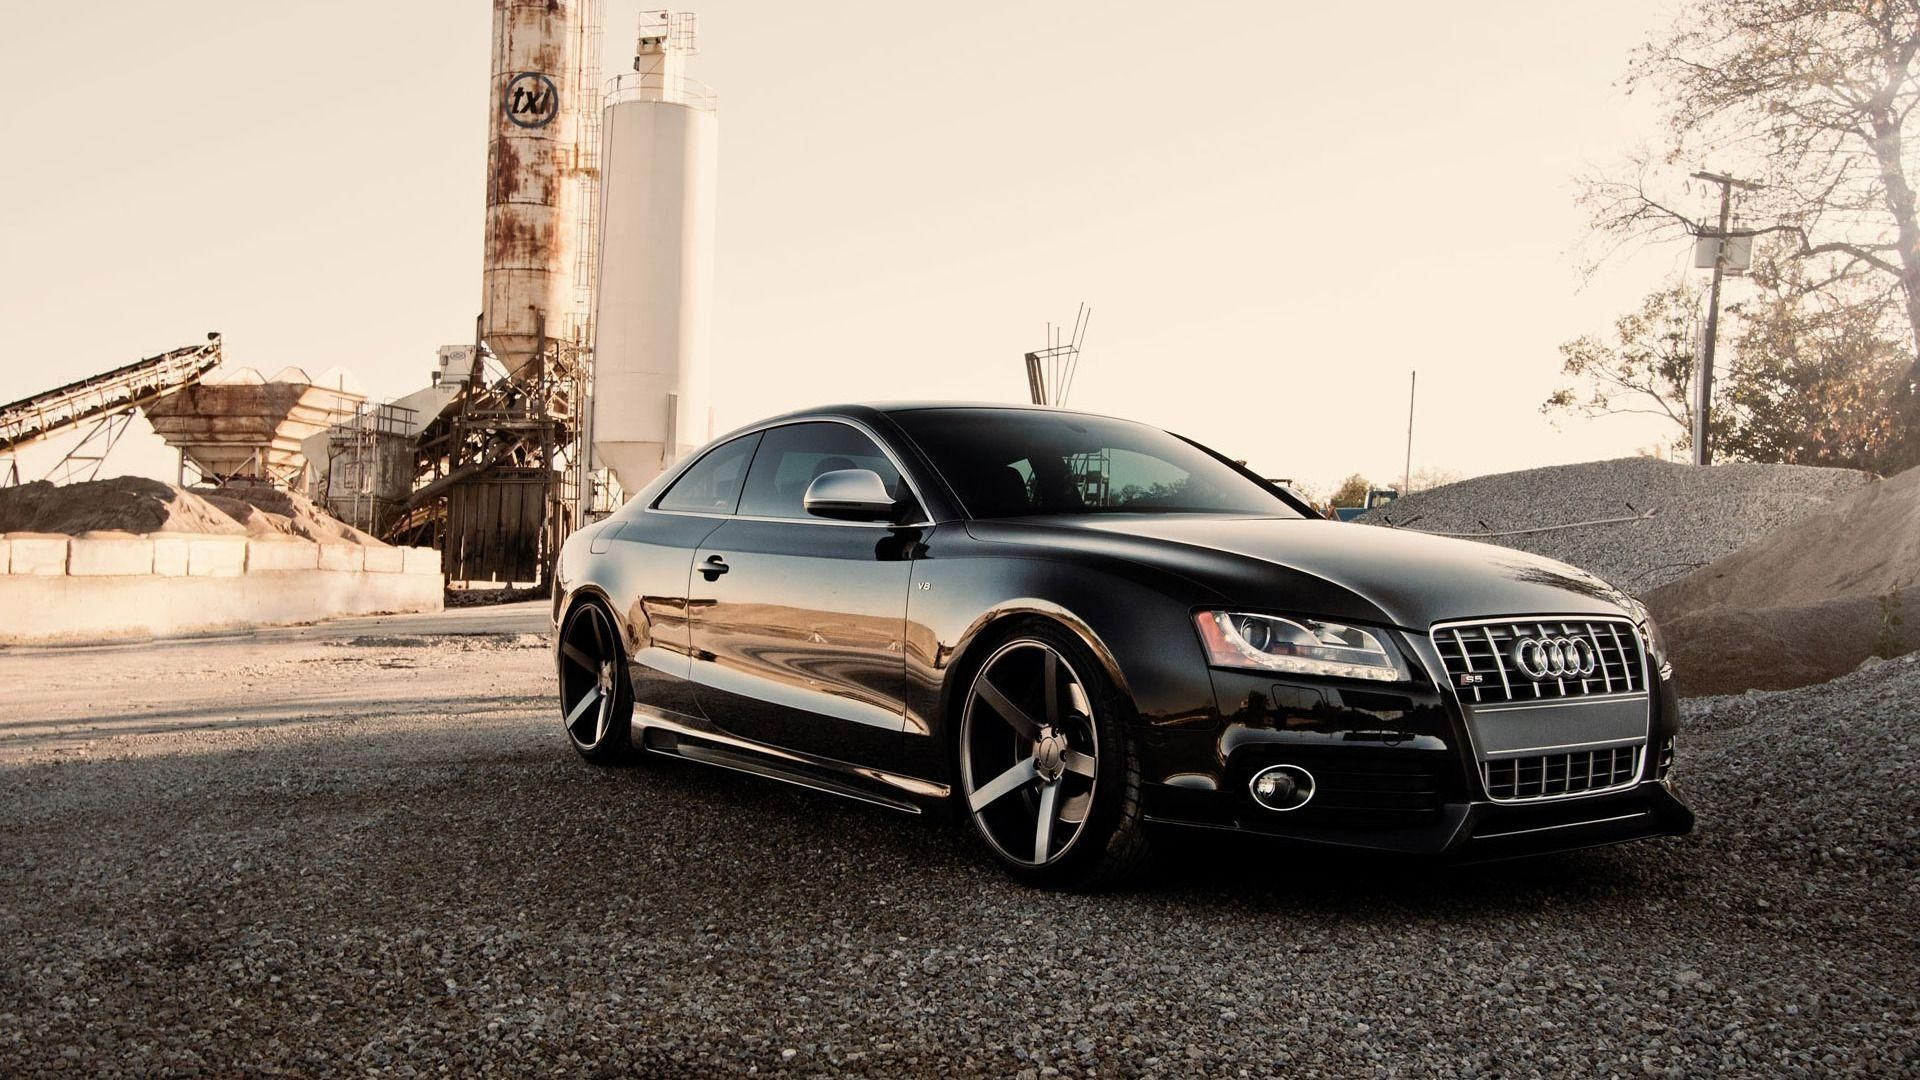 Have A Look At This Amazing Audi Rs7 Is This The Best Car Audi Has For Sale Right Now Audi Audirs7 R8 Rs7 Audirs Audir8rws Audi Car Car Wallpapers